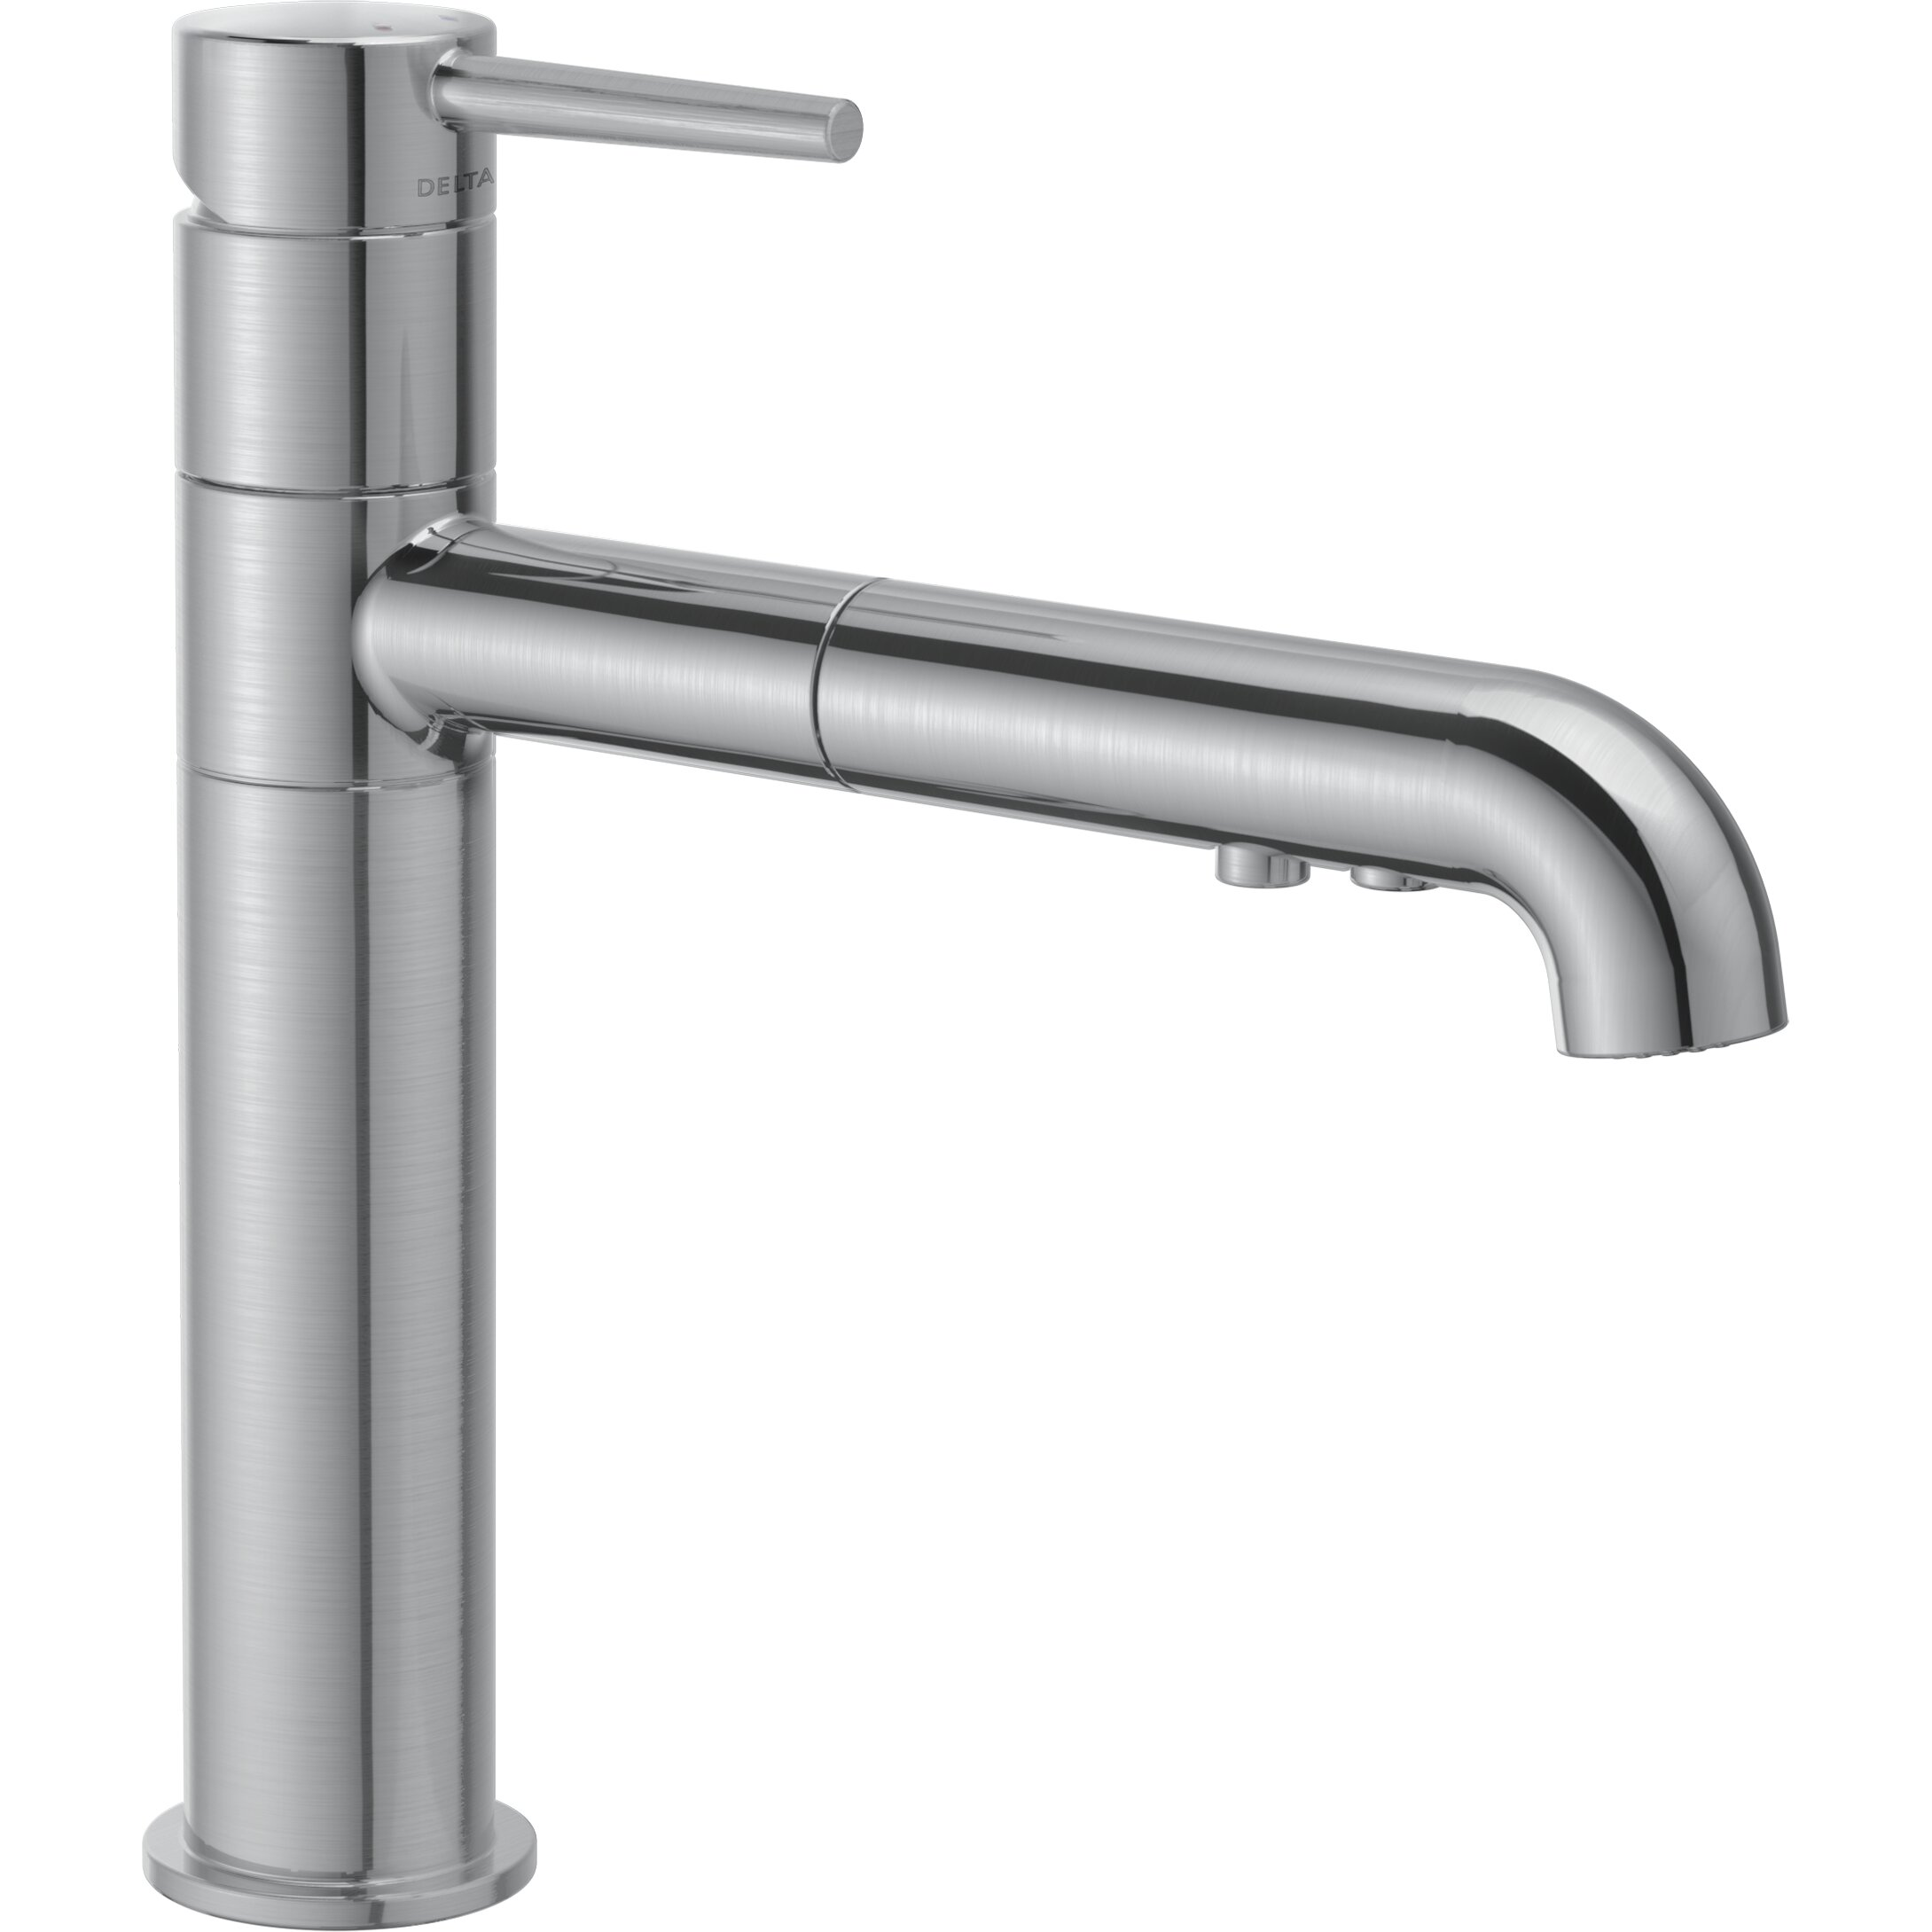 Pull Out Kitchen Faucet : ... Trinsic? Single Handle Pull-Out Kitchen Faucet & Reviews Wayfair